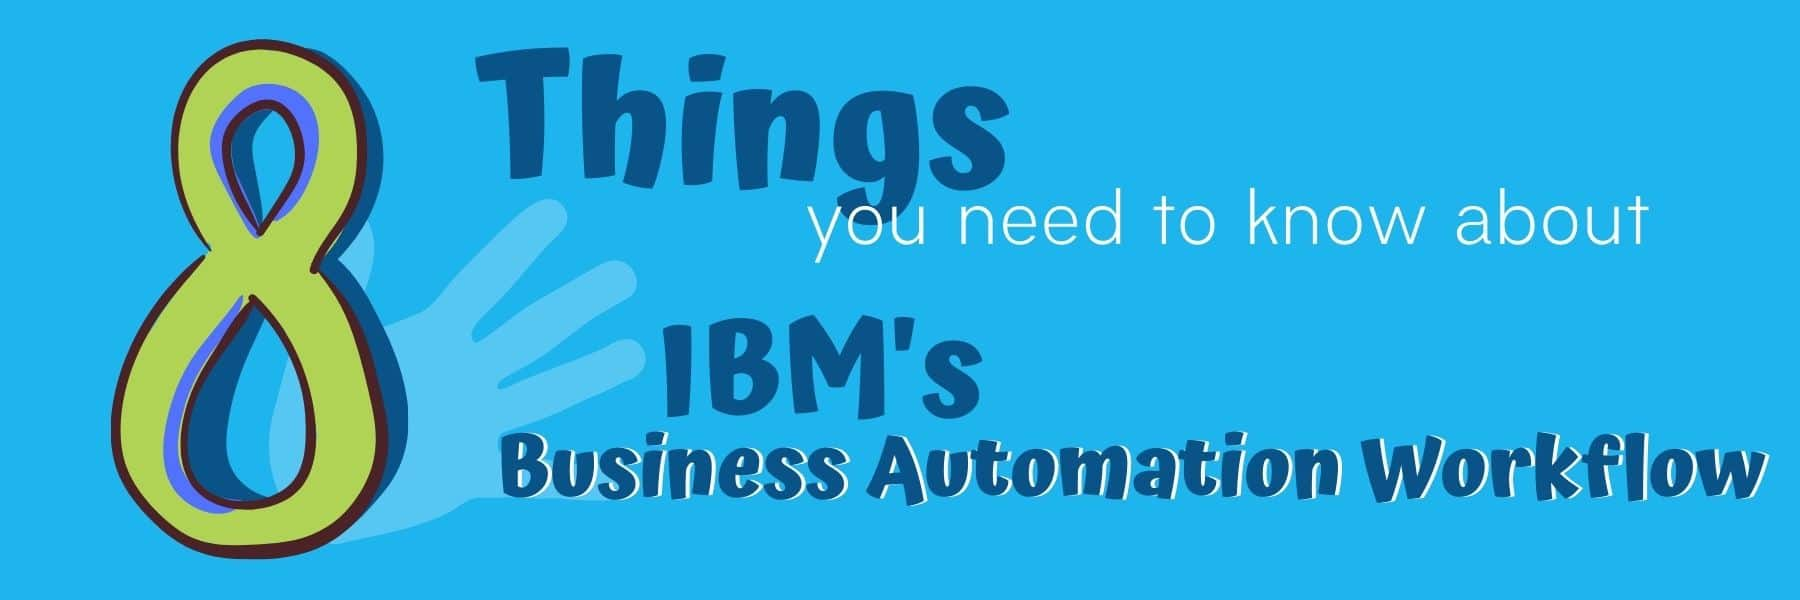 8 things to know about ibm baw graphic